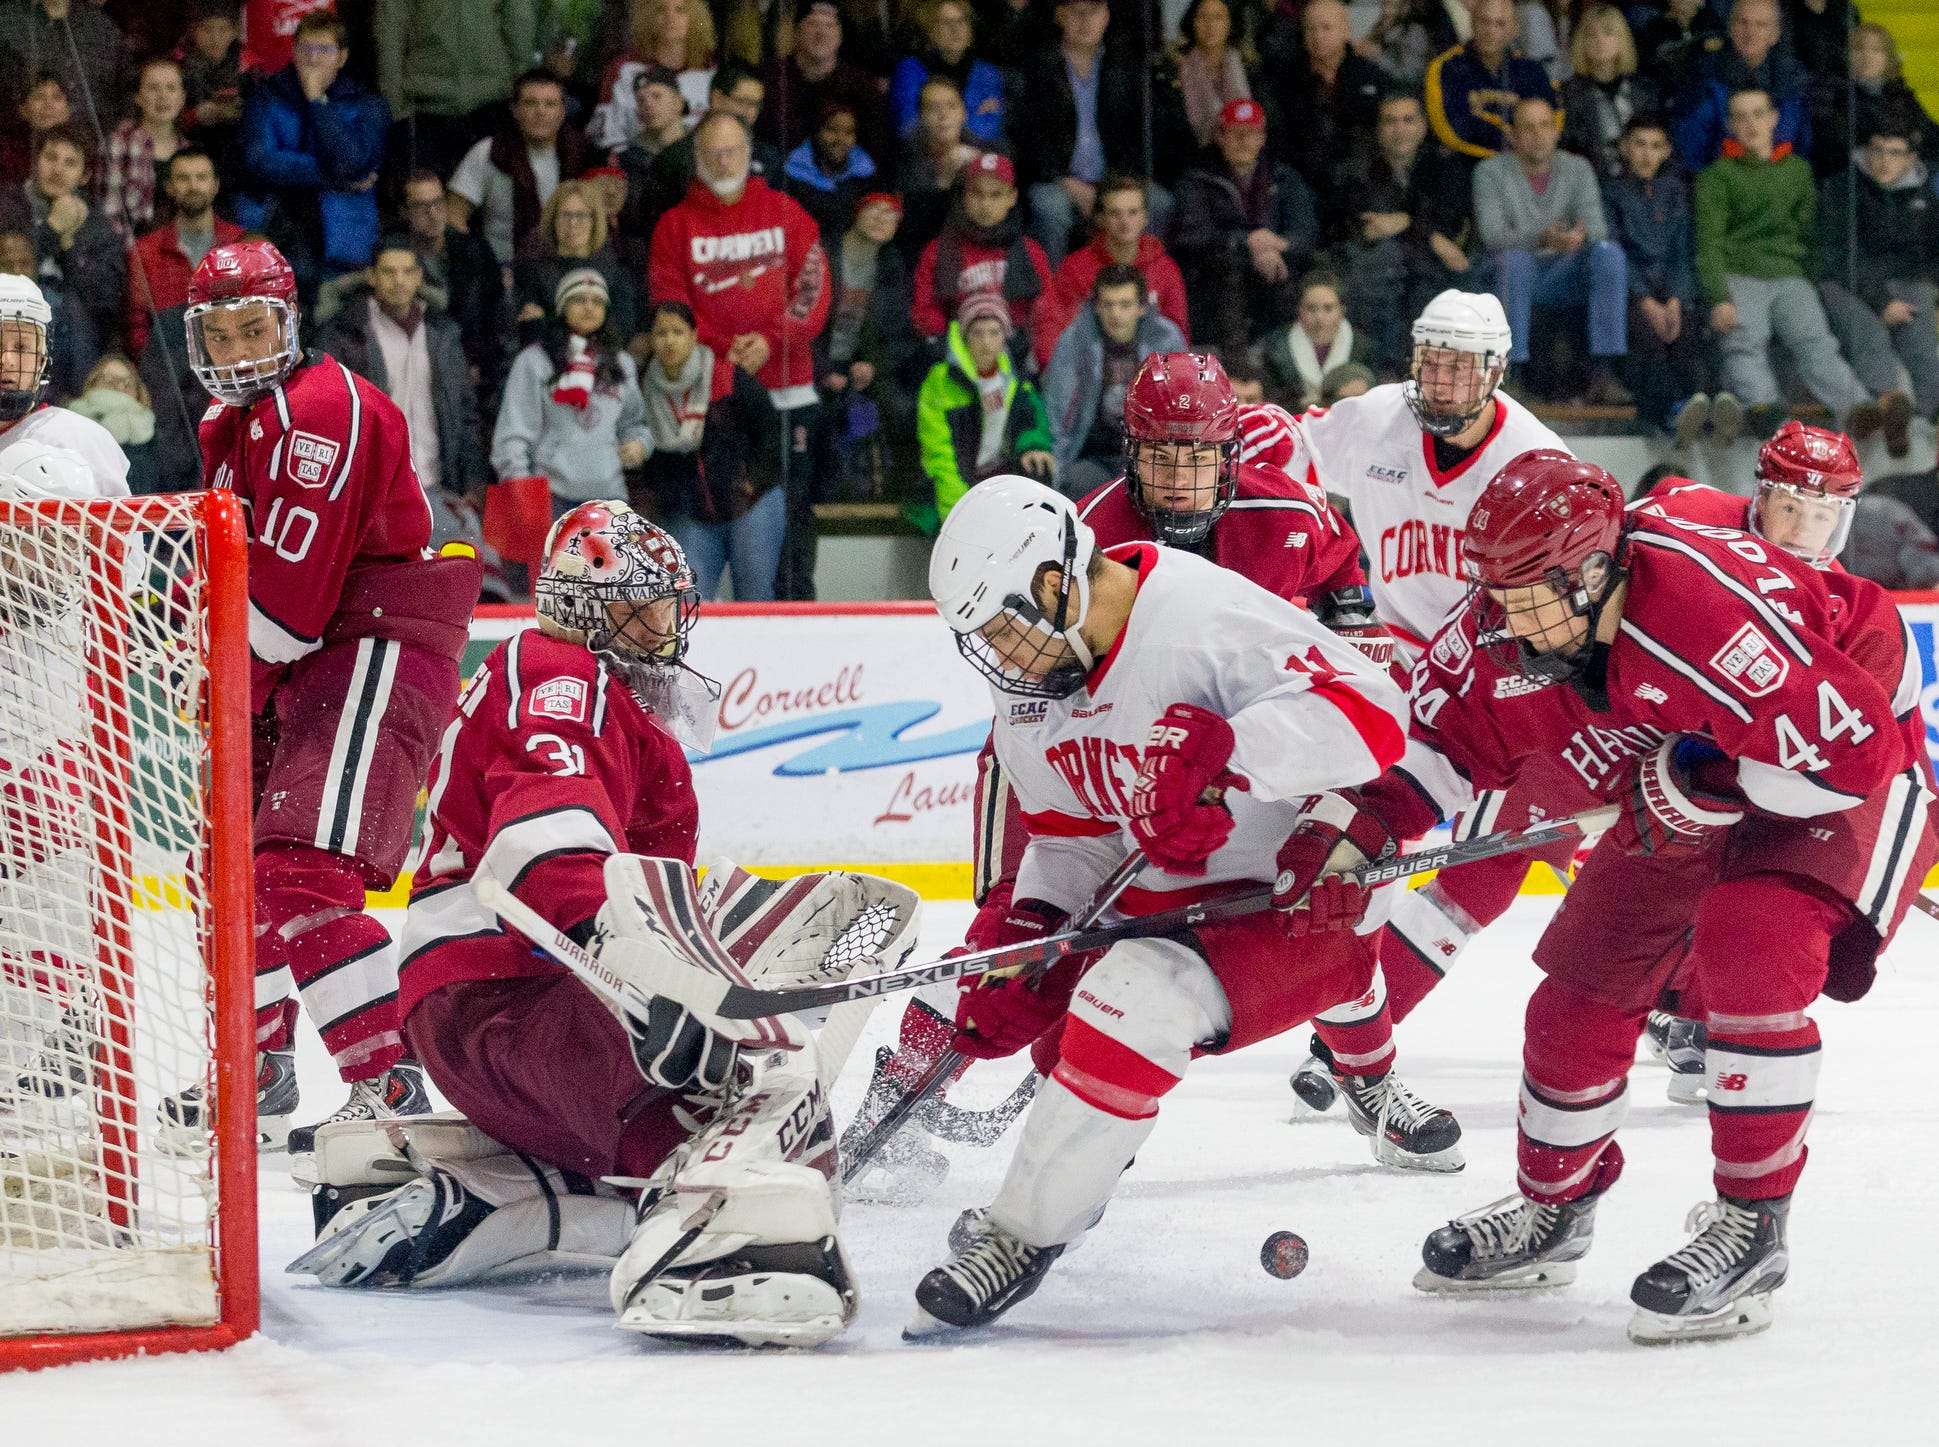 2016: Harvard goalie Merrick Madsen watches the puck as Cornell's Eric Freschi, center and Harvard's Michael Floodstrand try to control it in the closing minutes of Cornell's 6-2 loss Saturday evening at Lynah Rink.